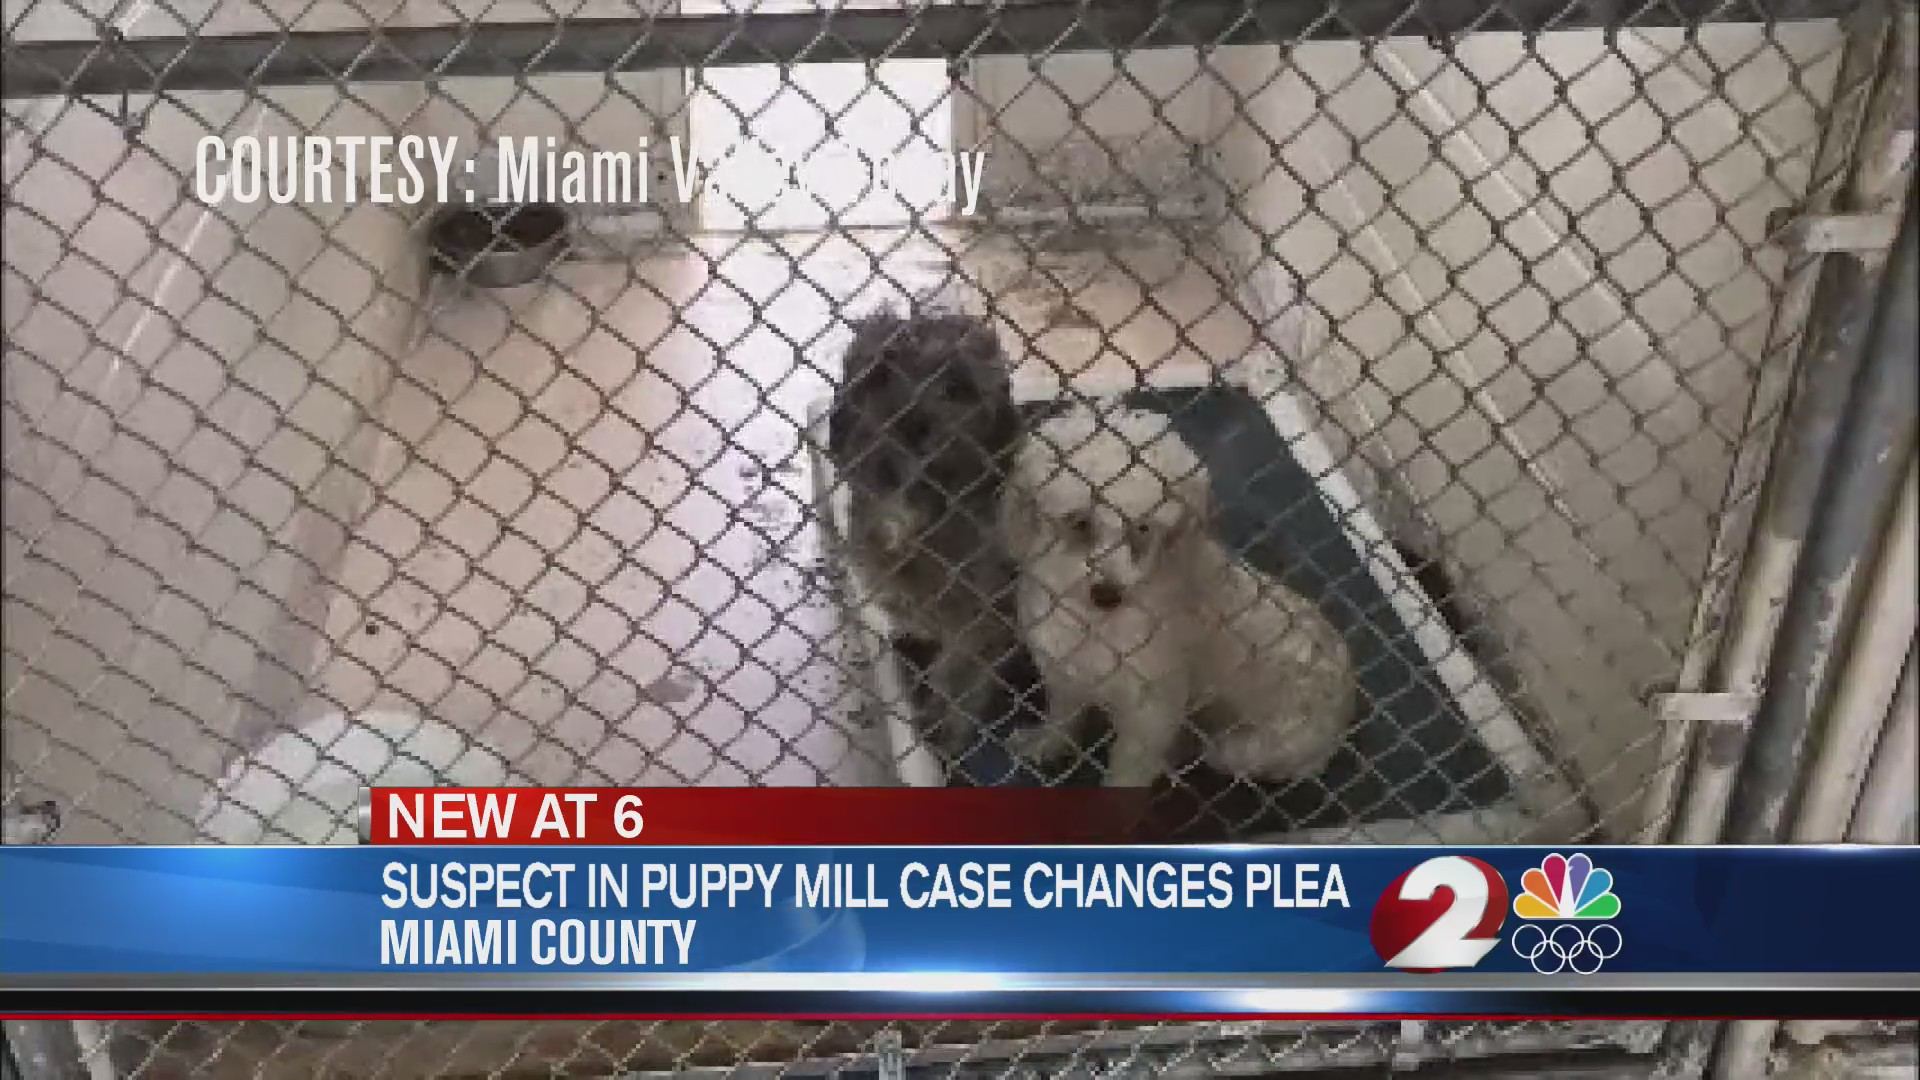 Suspect in puppy mill case changes plea